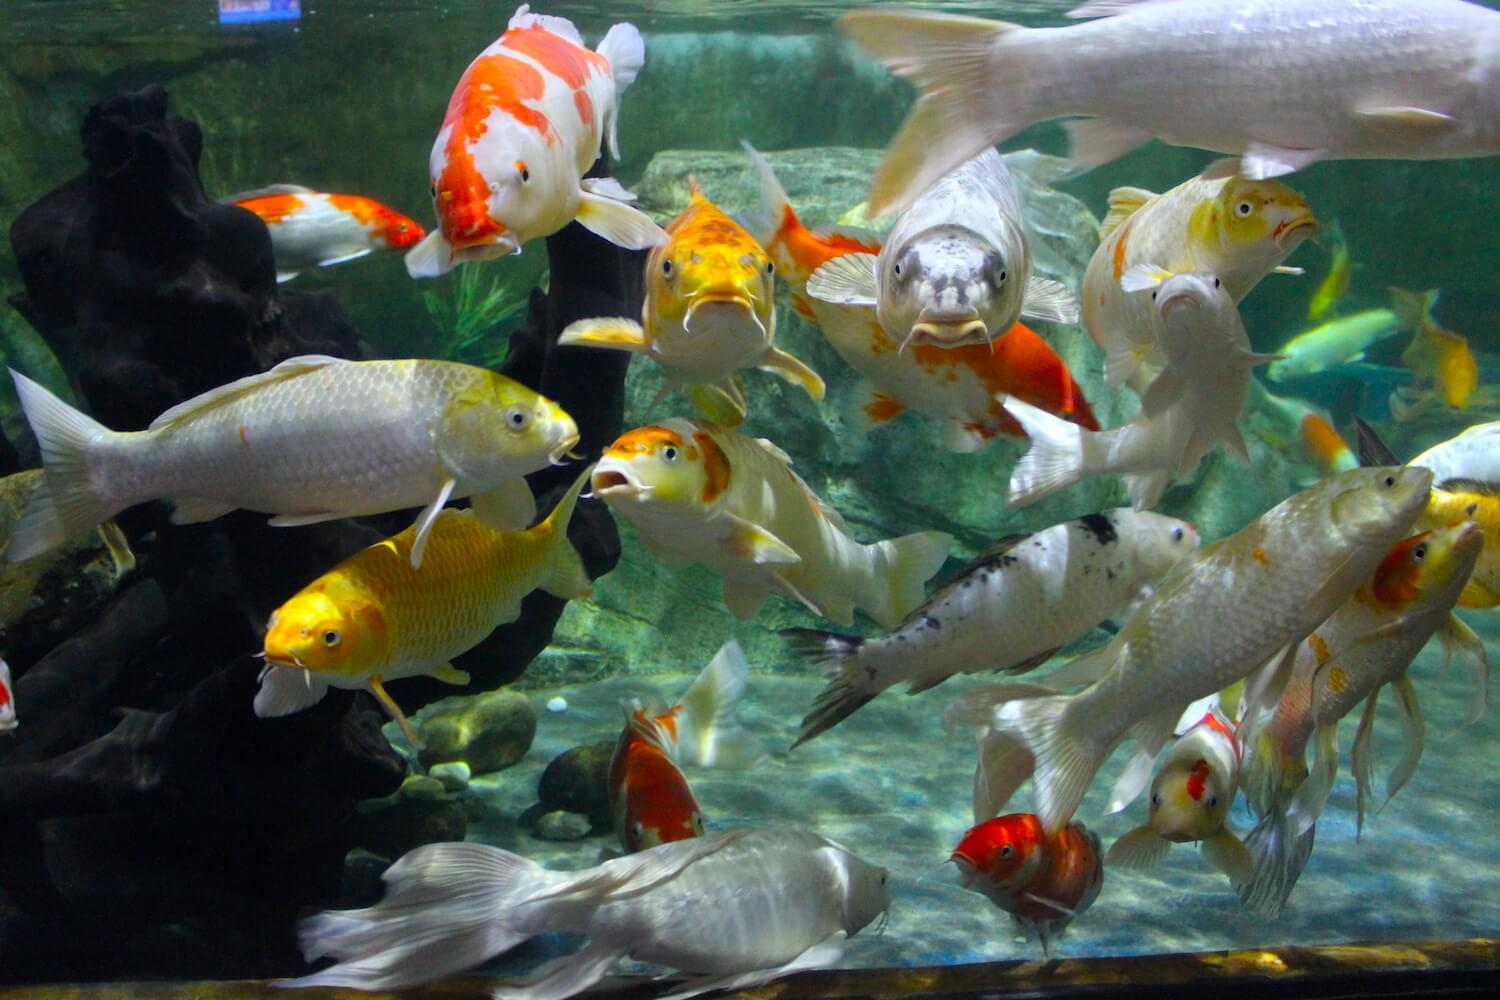 vincom times city mega mall vinpearl aquarium fish